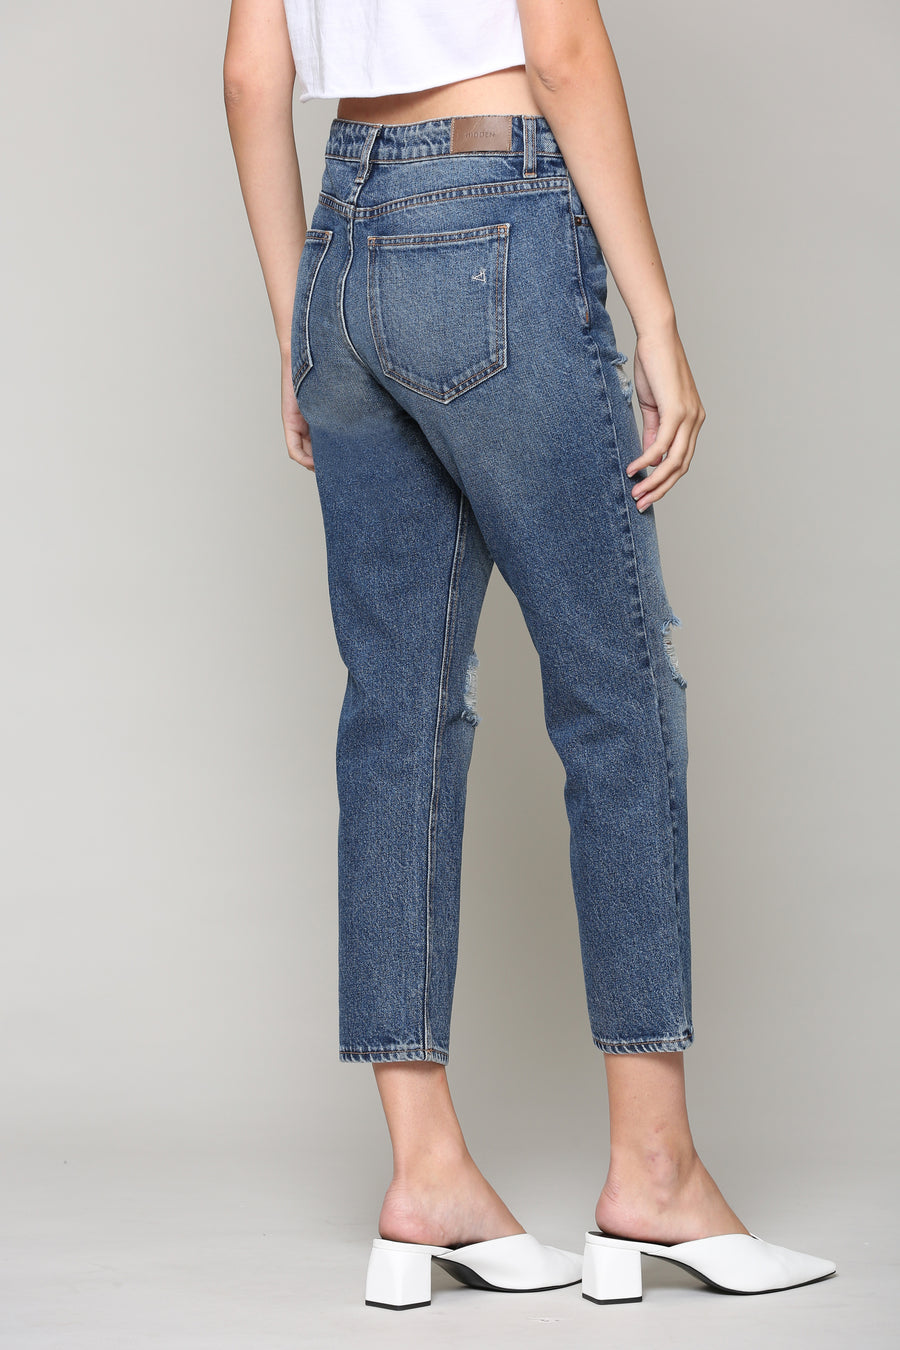 BAILEY<p/> DARK WASH DISTRESSED SLIM BOYFRIEND